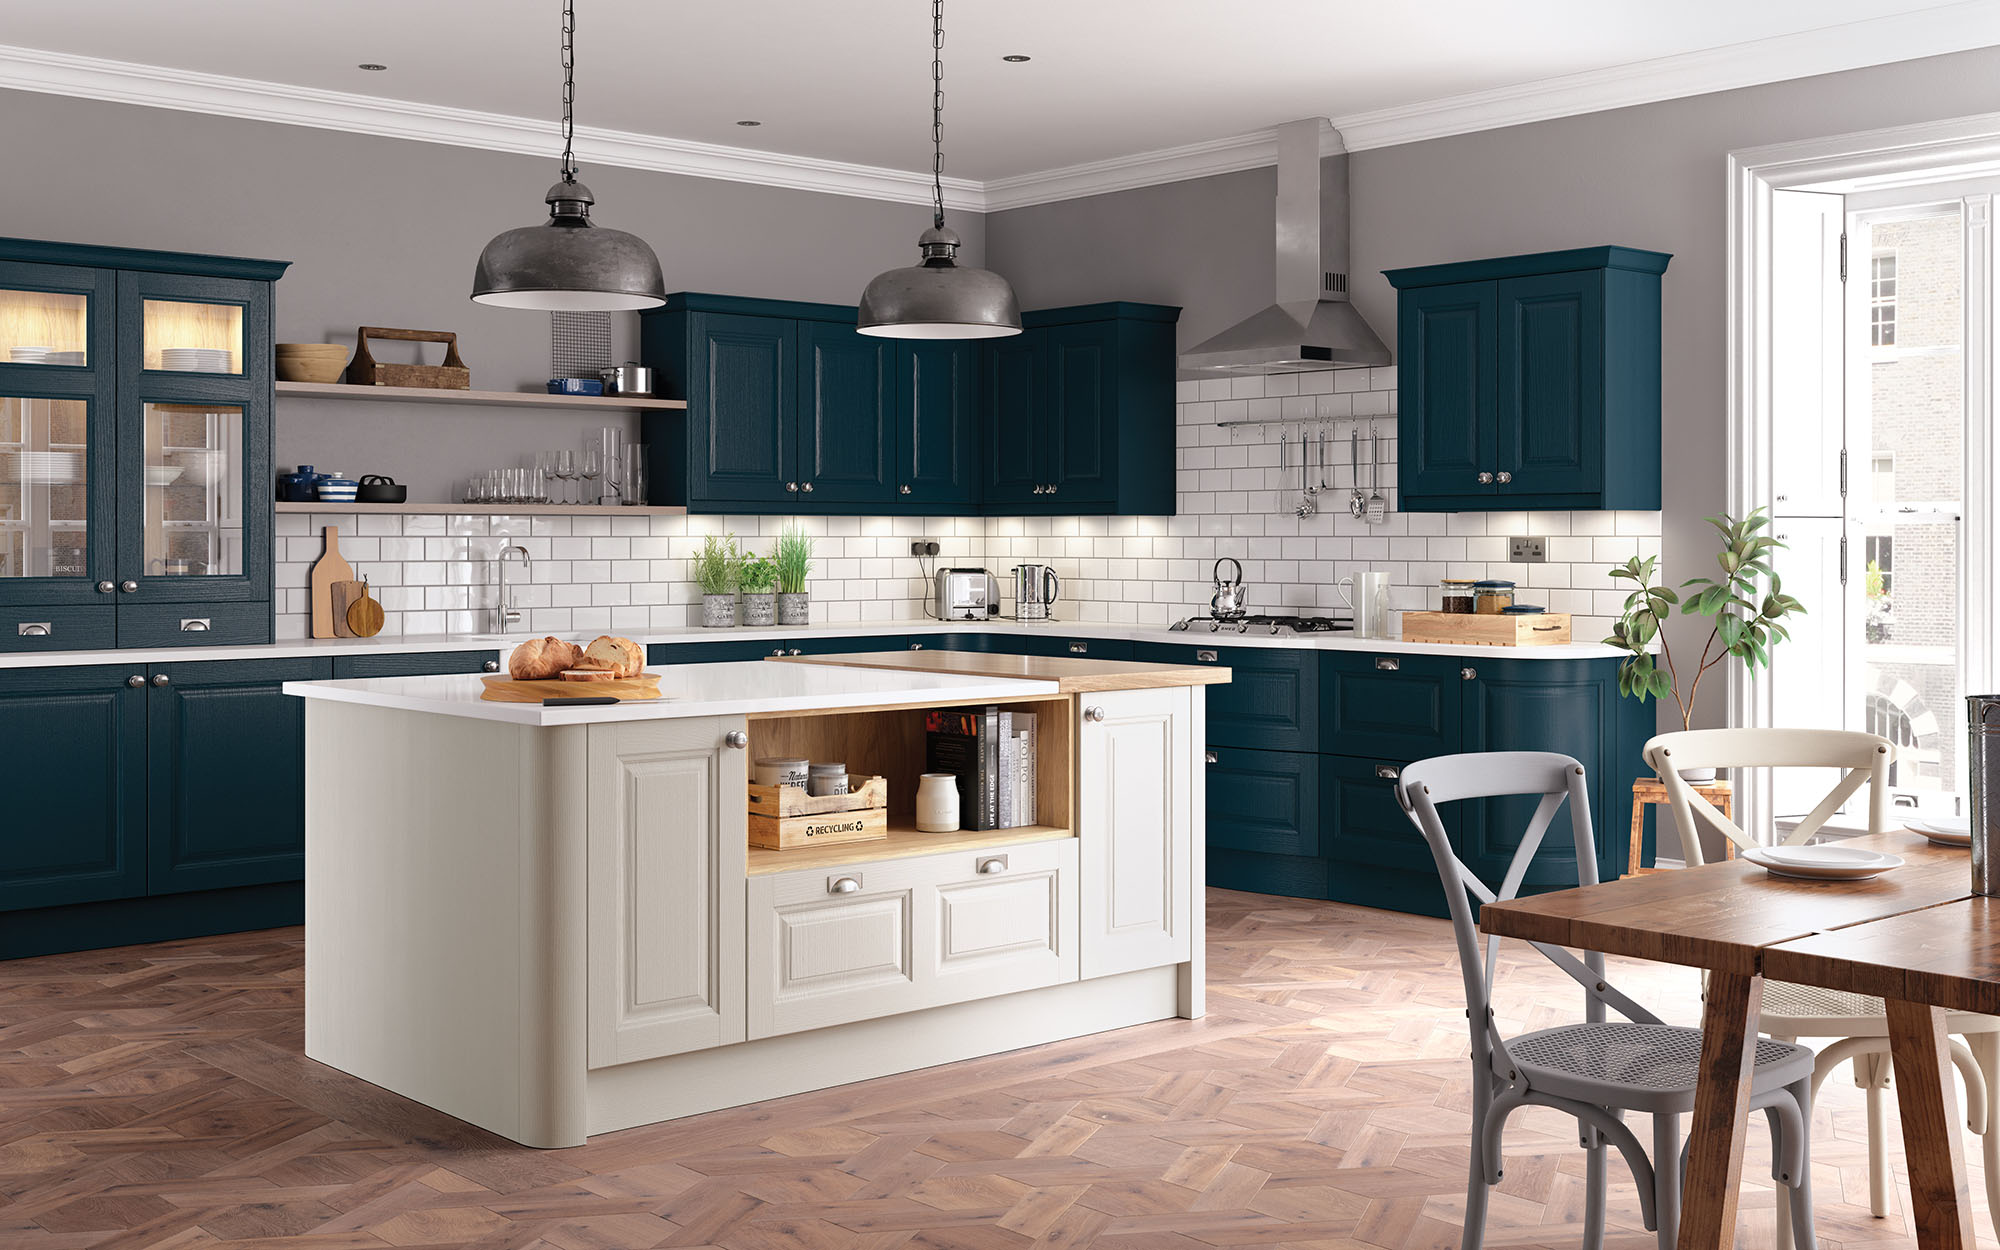 Classic Jefferson Kitchen in Painted Marine & Shell